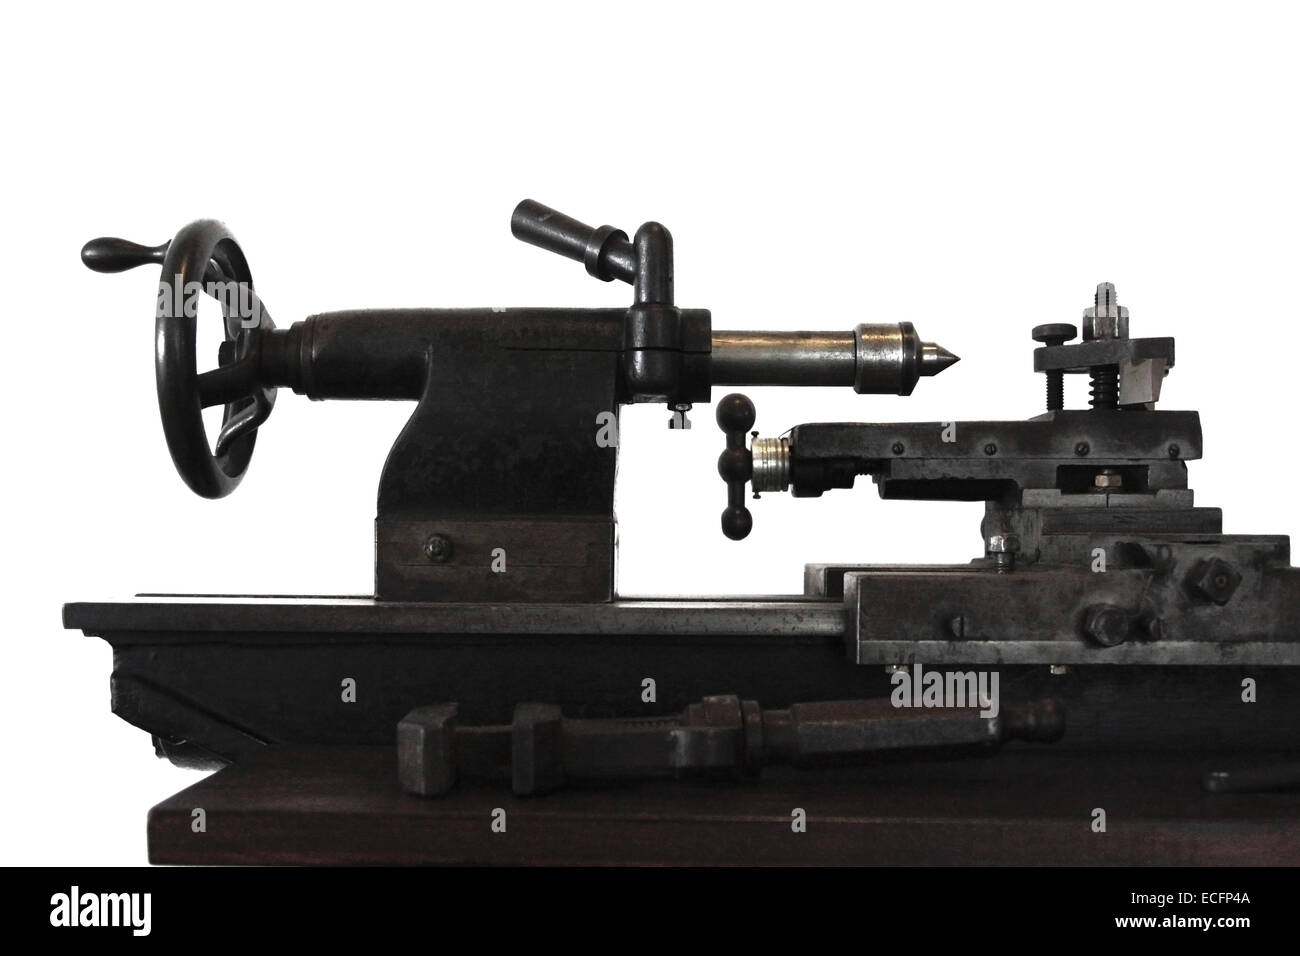 Isolated tailstock of a metalworking lathe, early 20th century - Stock Image